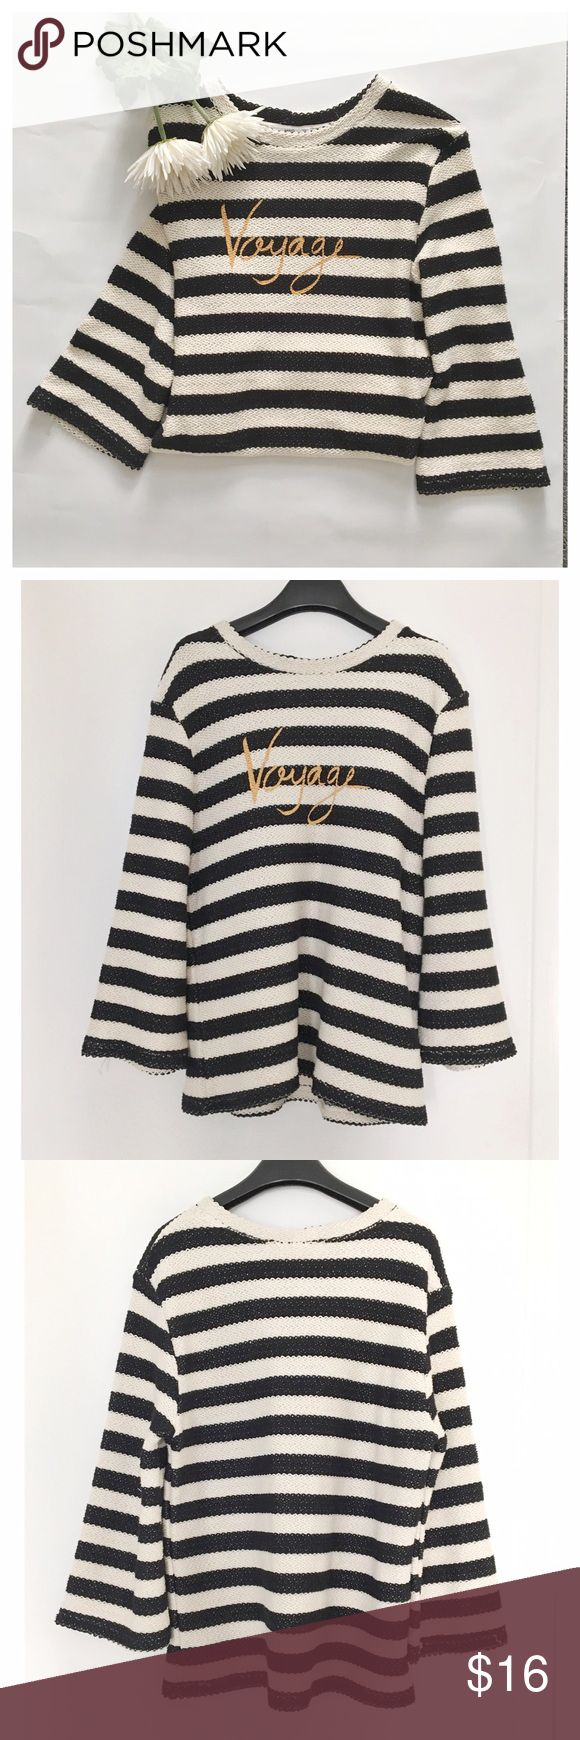 MANGO stripped sweatshirt XS Knitted fabric, striped design, rounded neck, slightly flared sleeve. 100% Cotton. The size is XS and loose fitting. I wore this once and it's in perfect condition. Mango Tops Sweatshirts & Hoodies